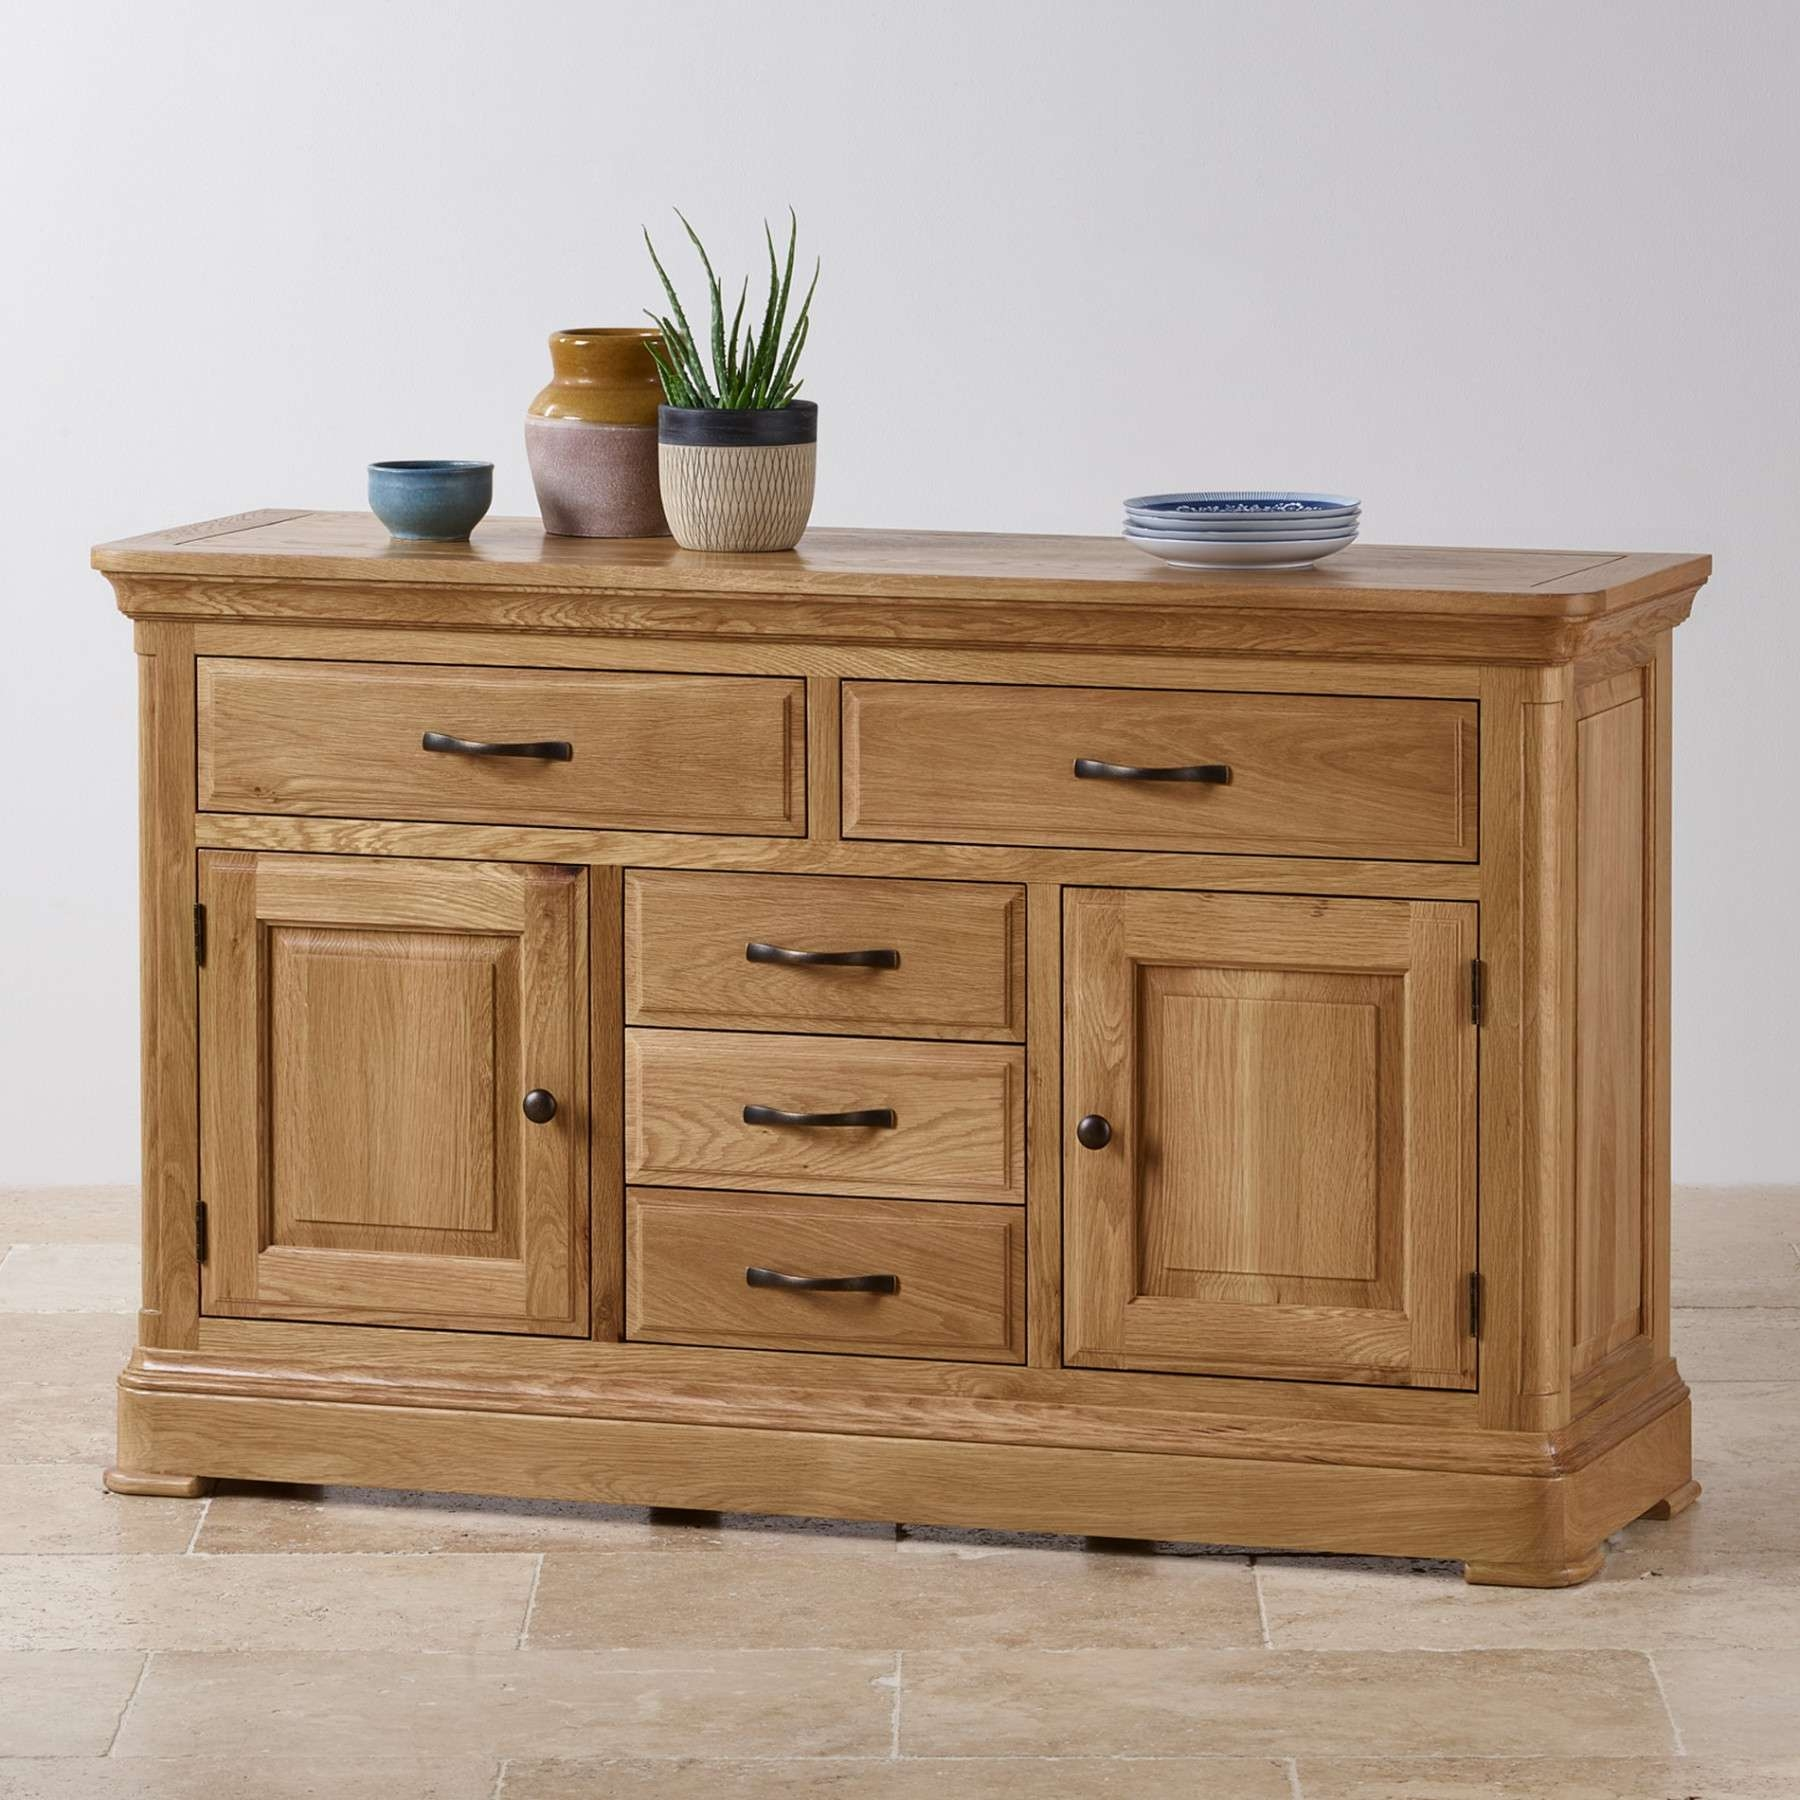 Canterbury Natural Solid Oak Large Sideboard | Sideboards | Dining Within Rustic Oak Large Sideboards (View 9 of 20)